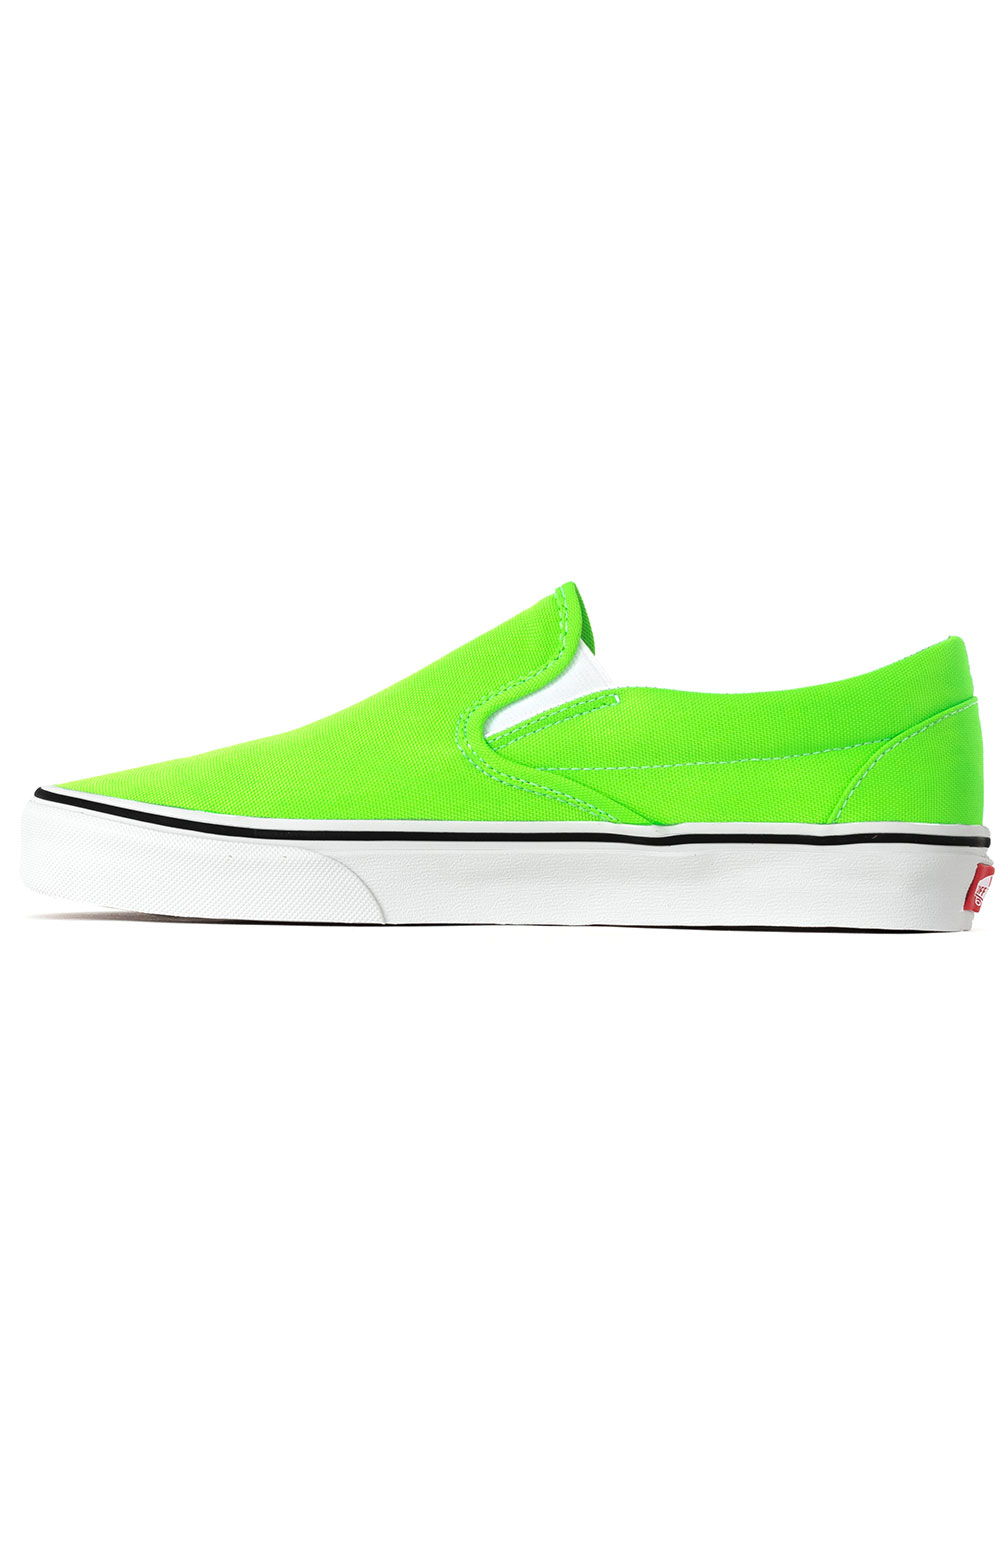 (U38WT5) Neon Classic Slip-On Shoes - Green Gecko 4